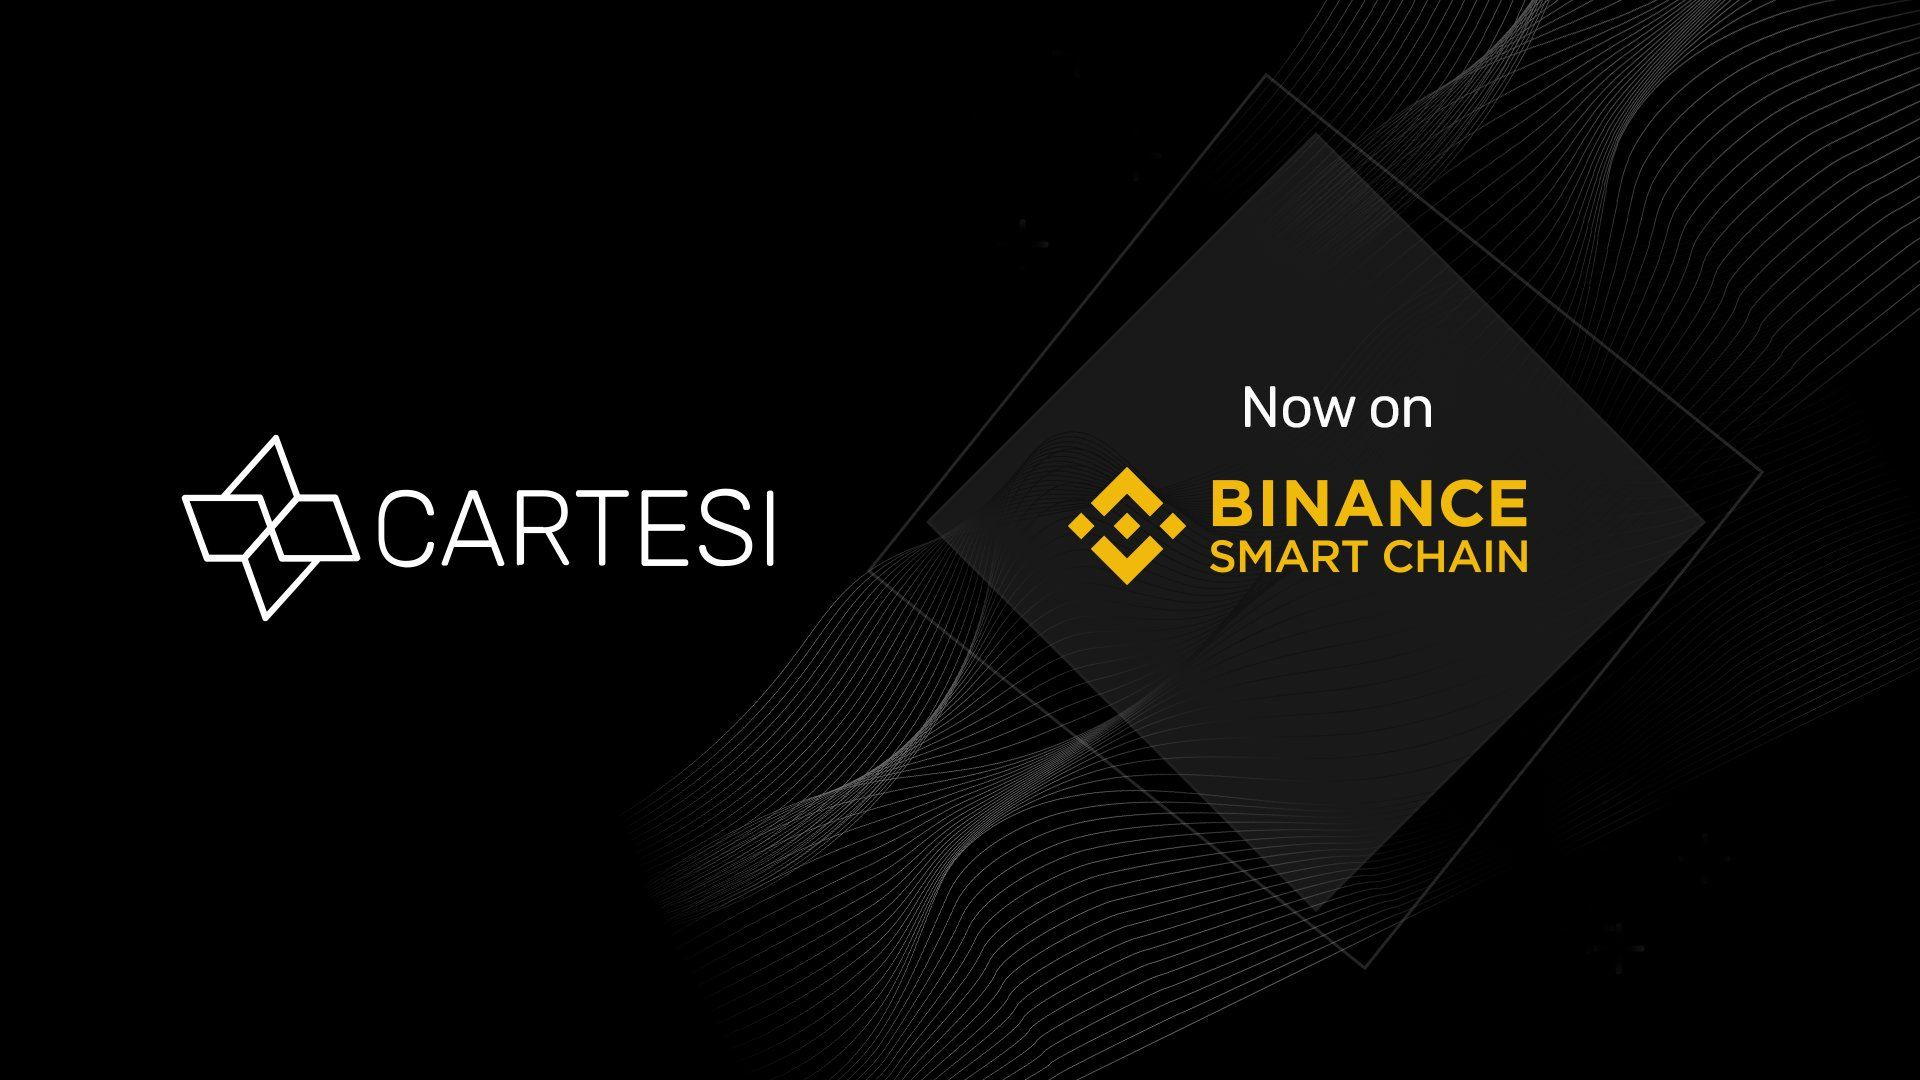 Cartesi partners with Binance Smart Chain to provide high computational resources and a decentralized Linux environment for DApps